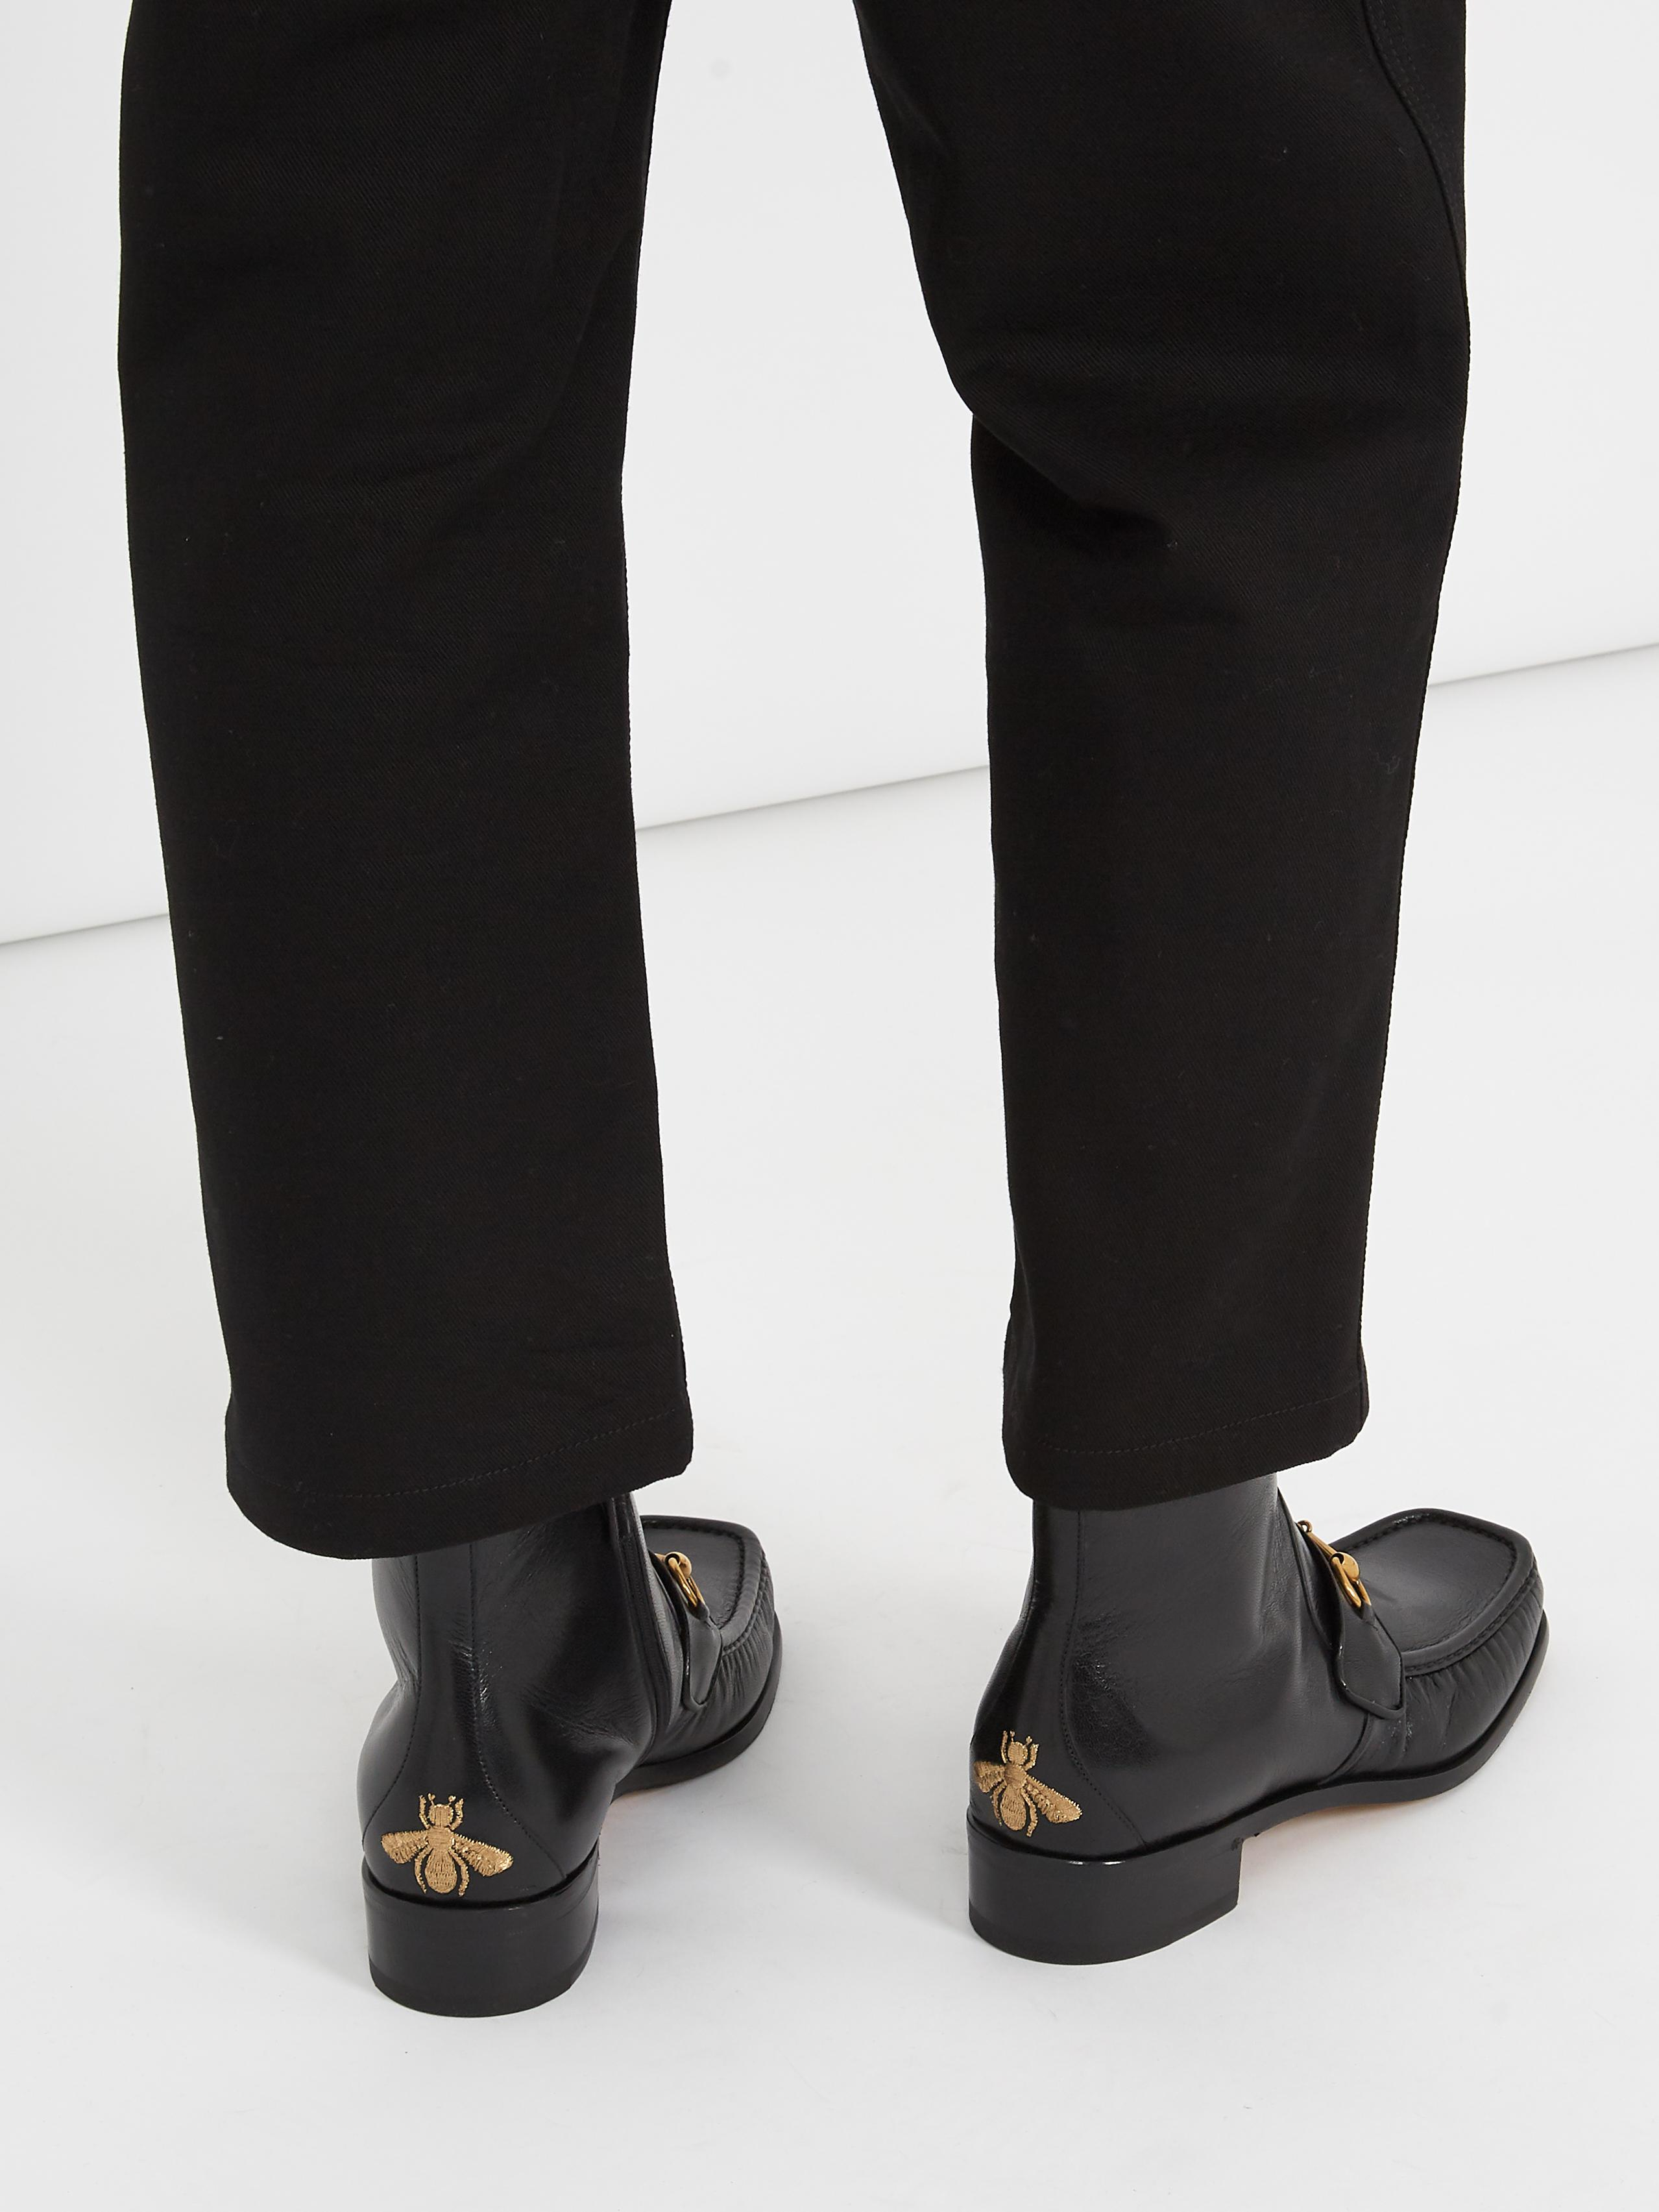 lyst gucci vegas leather boots in black for men